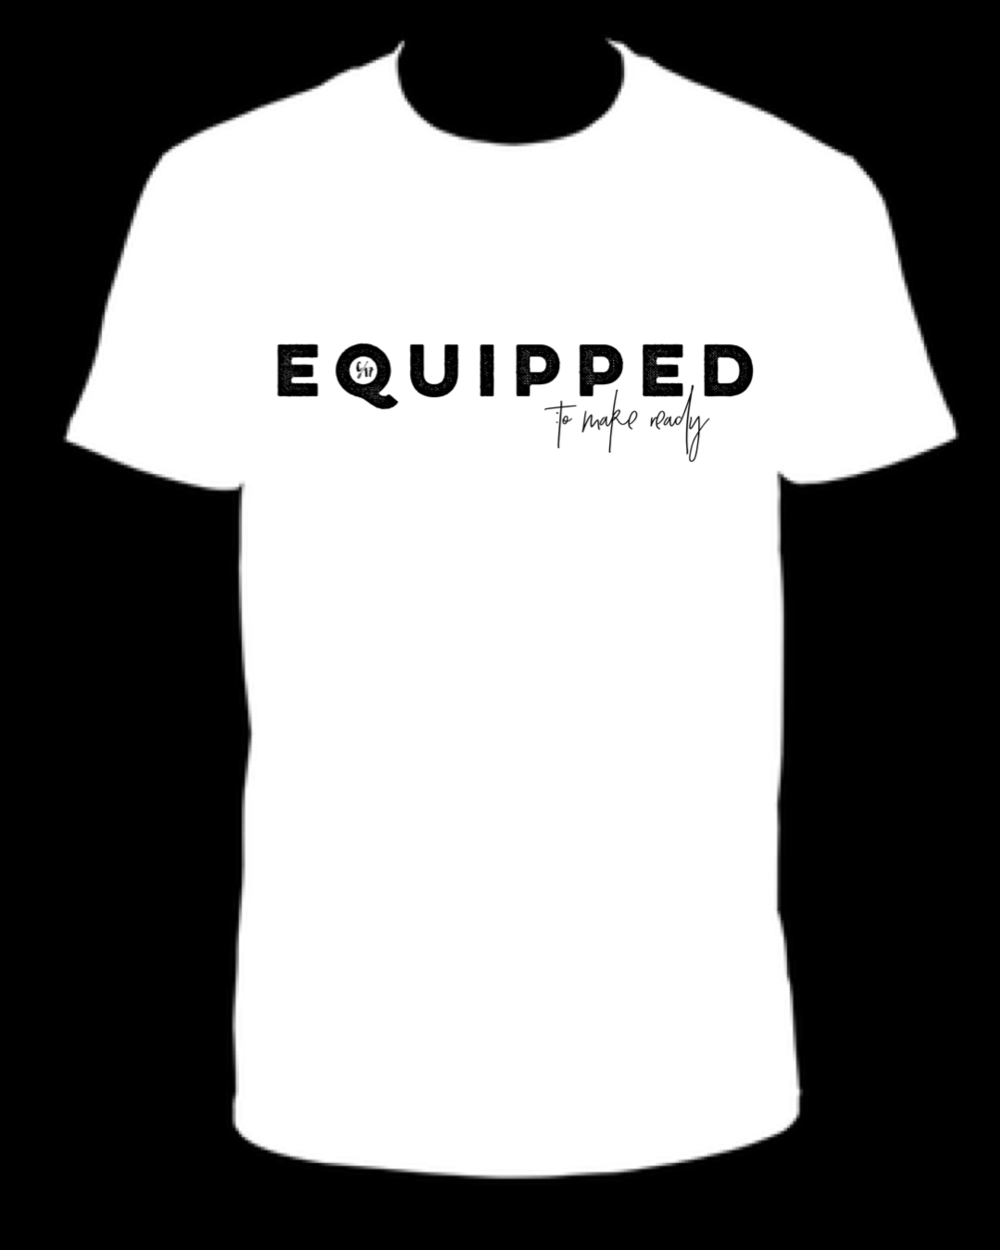 The free t-shirt is a uni-sex shirt! You will be prompted to enter your t-shirt size once you select a donation amount!